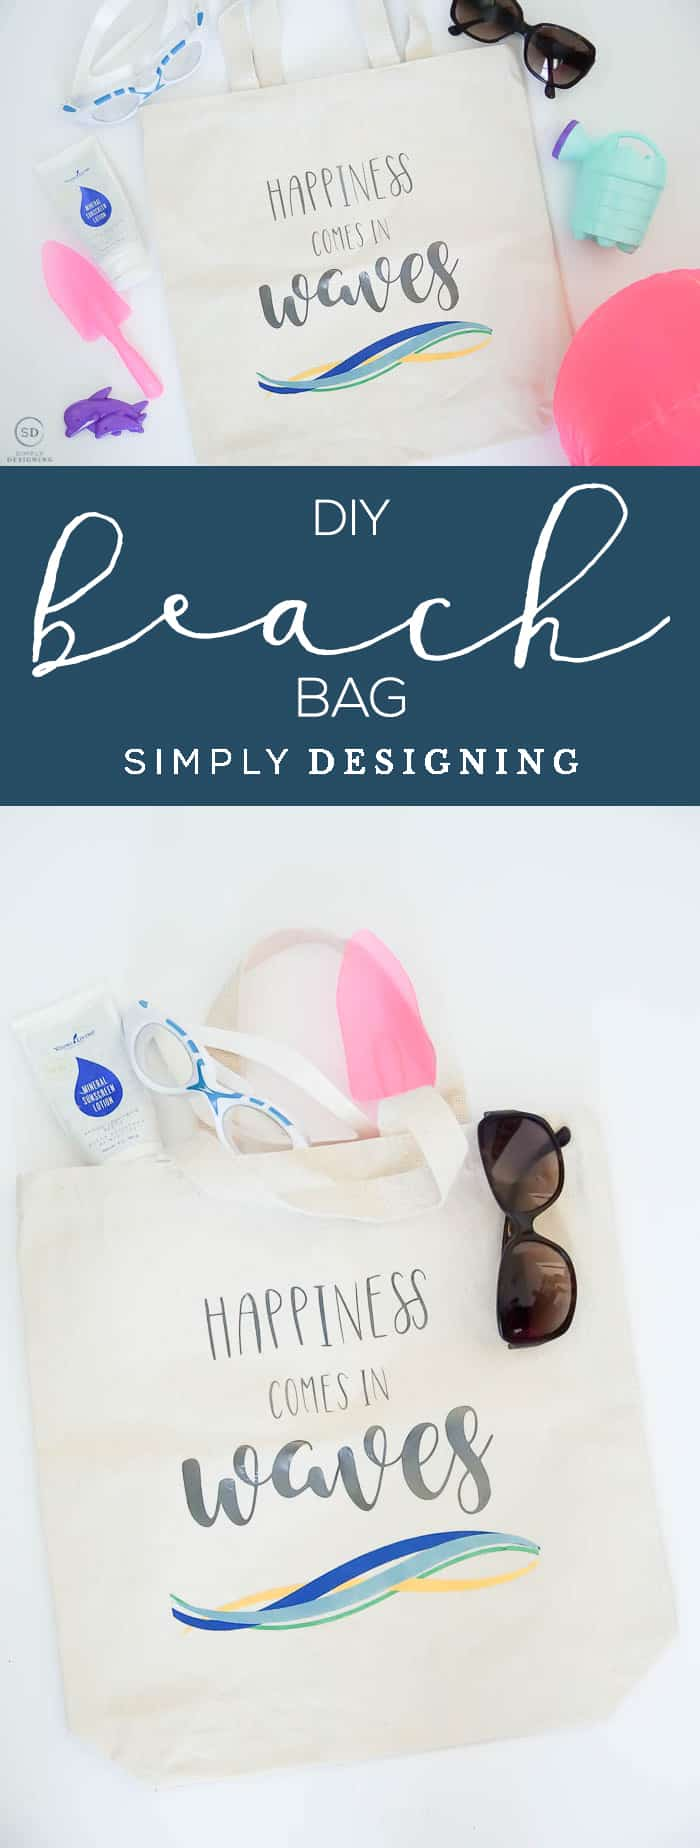 DIY Beach Bag - How to make a Tote Bag with Vinyl - Vinyl Beach Bag